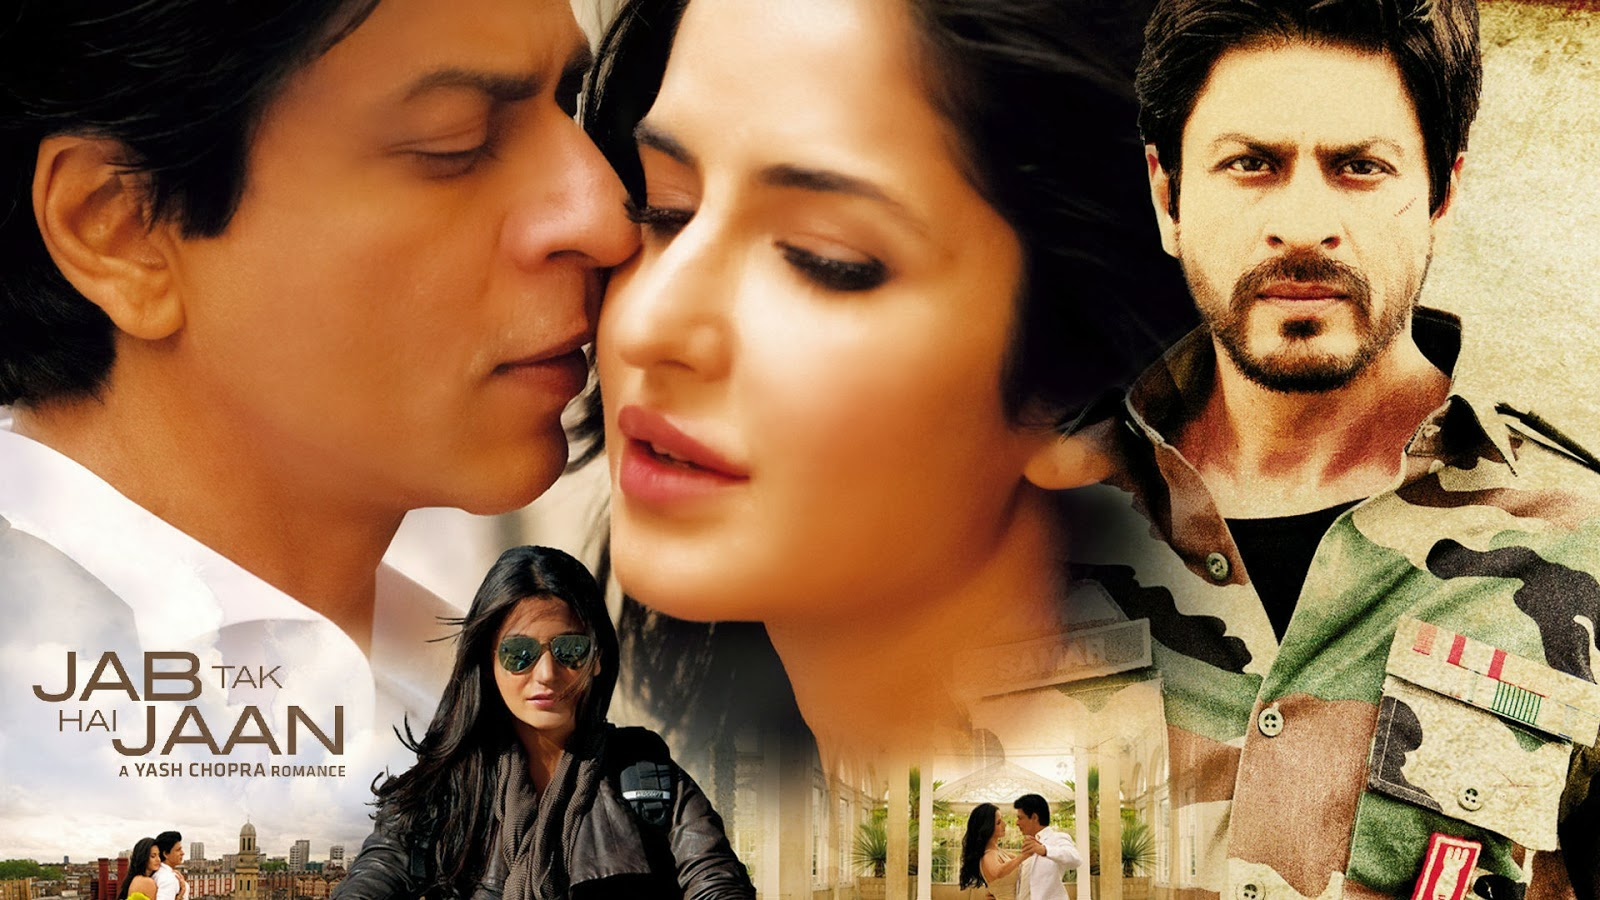 Jab Tak Hai Jaan Dialogue Status - Full HD Photo - Shahrukh Khan, Anushka, Katrina